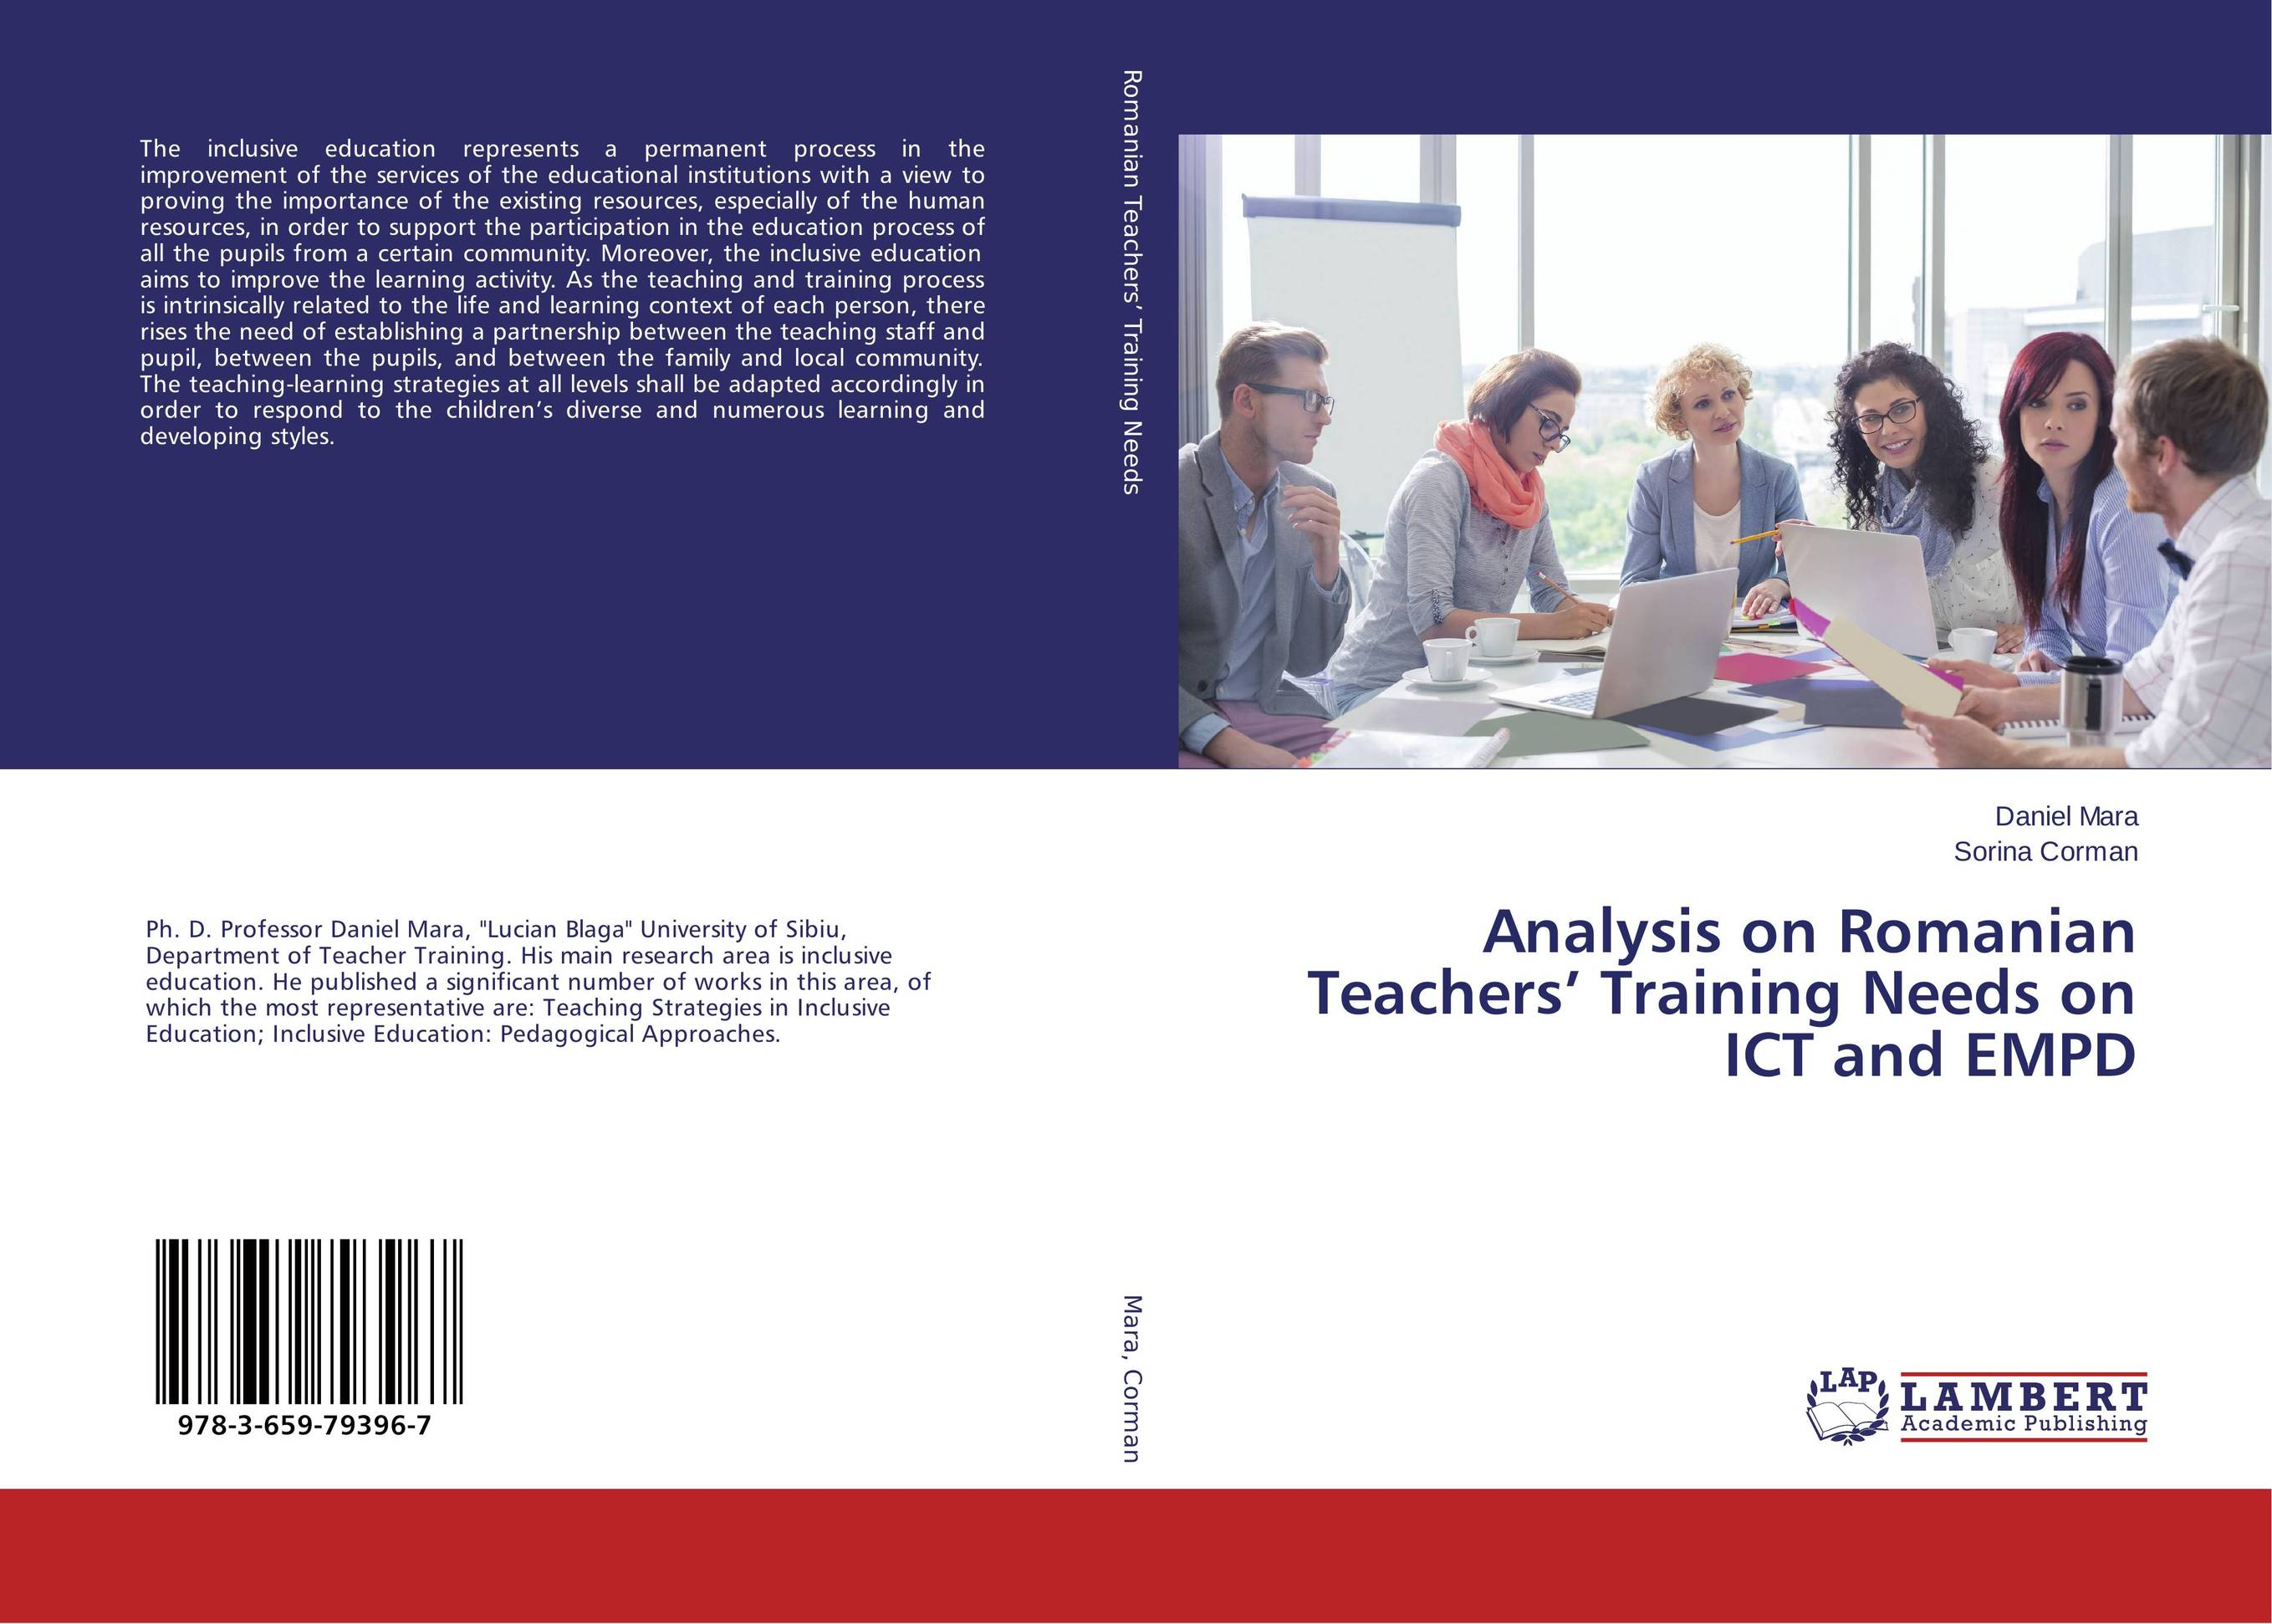 Analysis on Romanian Teachers' Training Needs on ICT and EMPD learning resources набор пробей